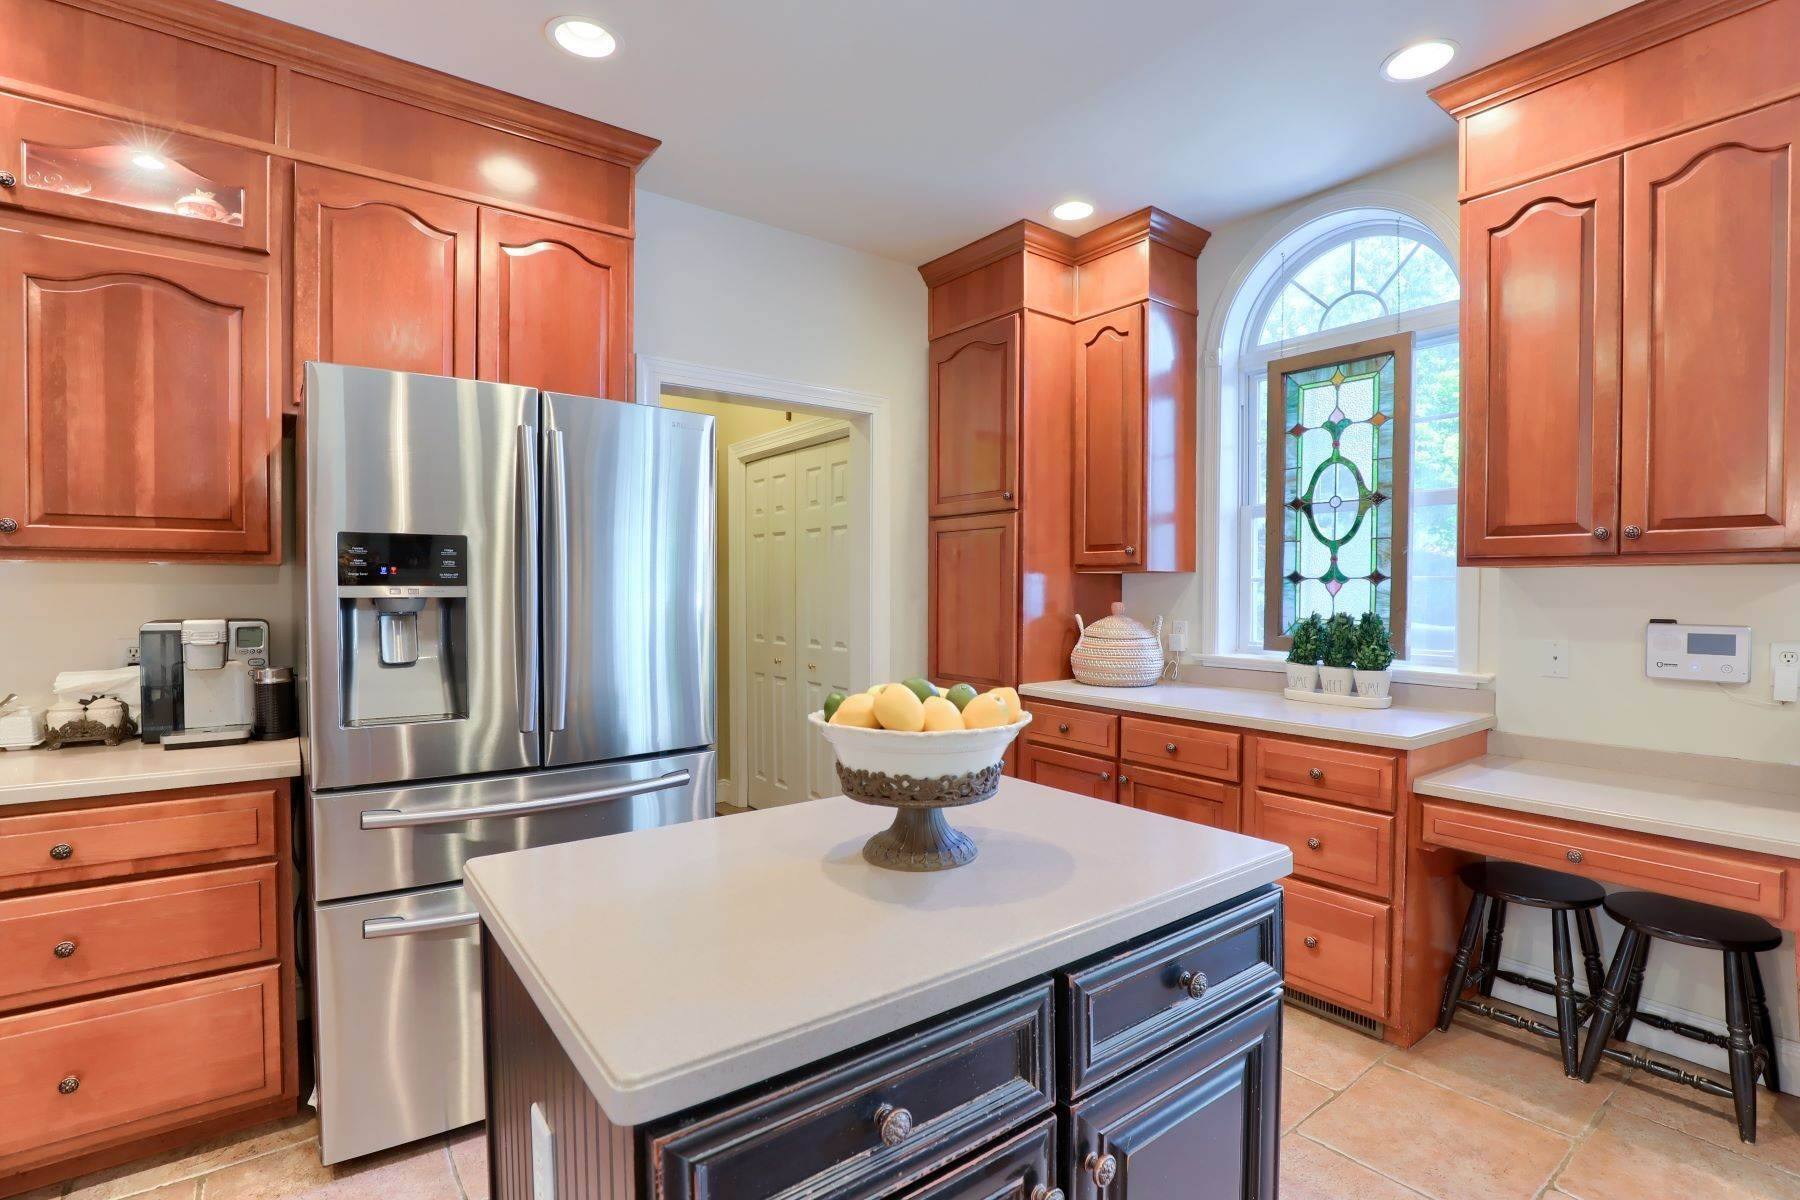 17. Single Family Homes for Sale at 195 W Millport Road Lititz, Pennsylvania 17543 United States